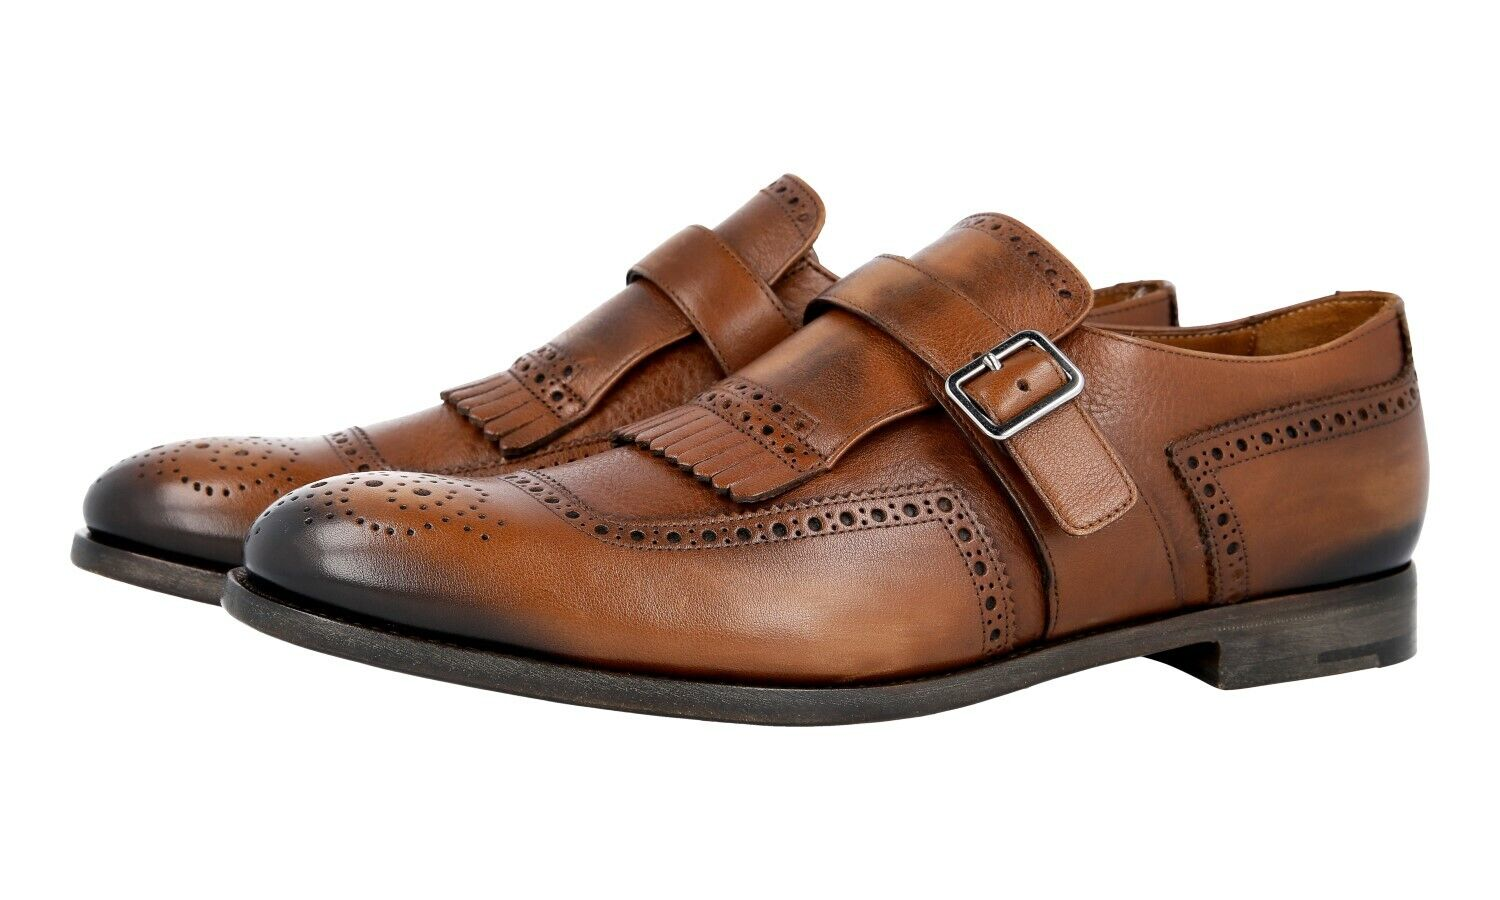 shoes PRADA LUSSO 2OF001 ROVERE NUOVE 7,5 41,5 42